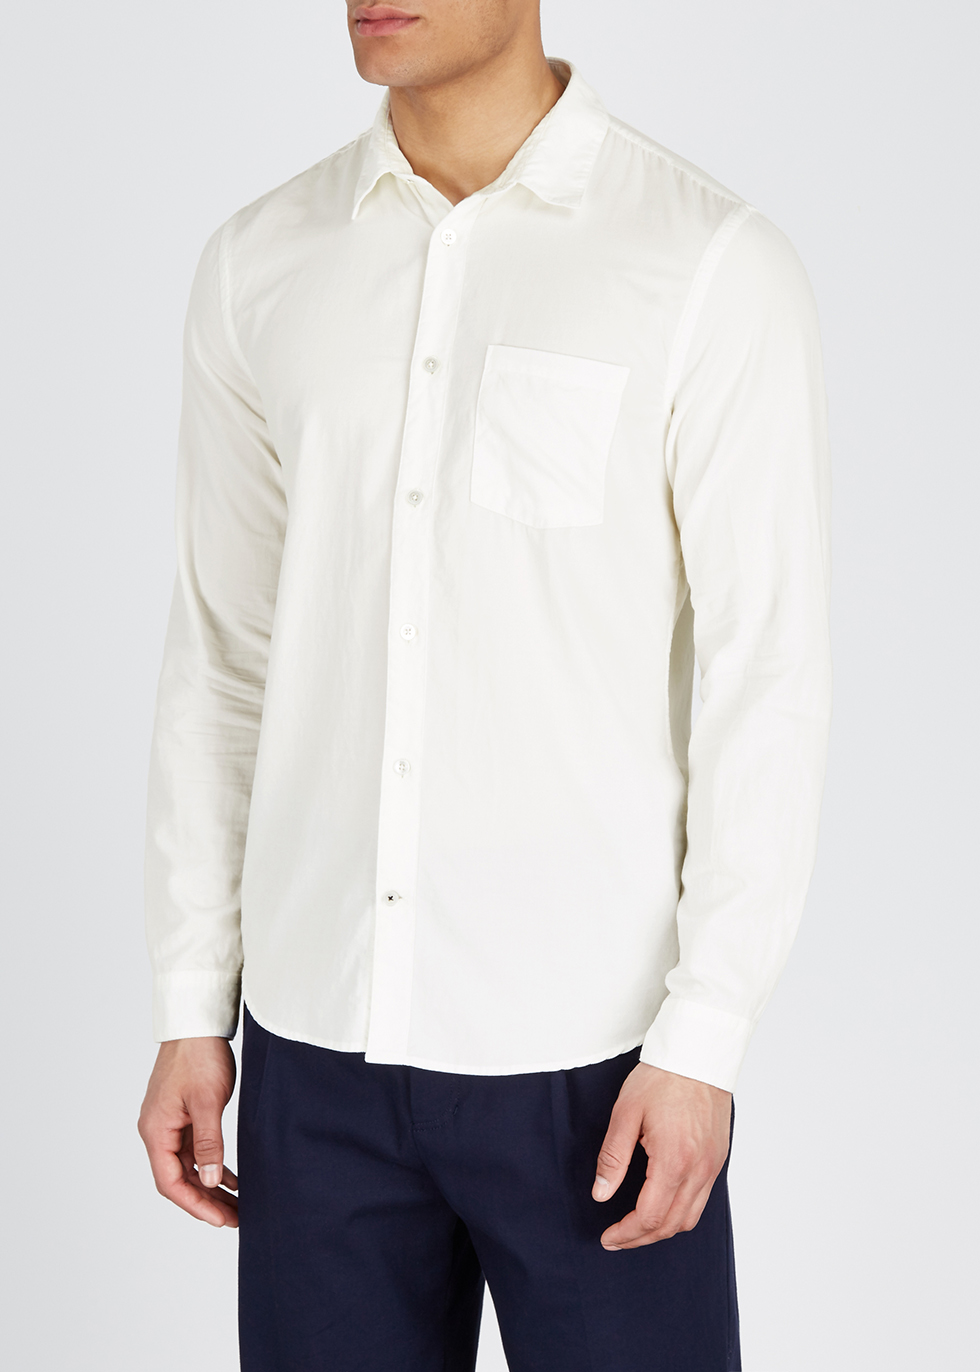 Leon off-white corduroy shirt - NN07